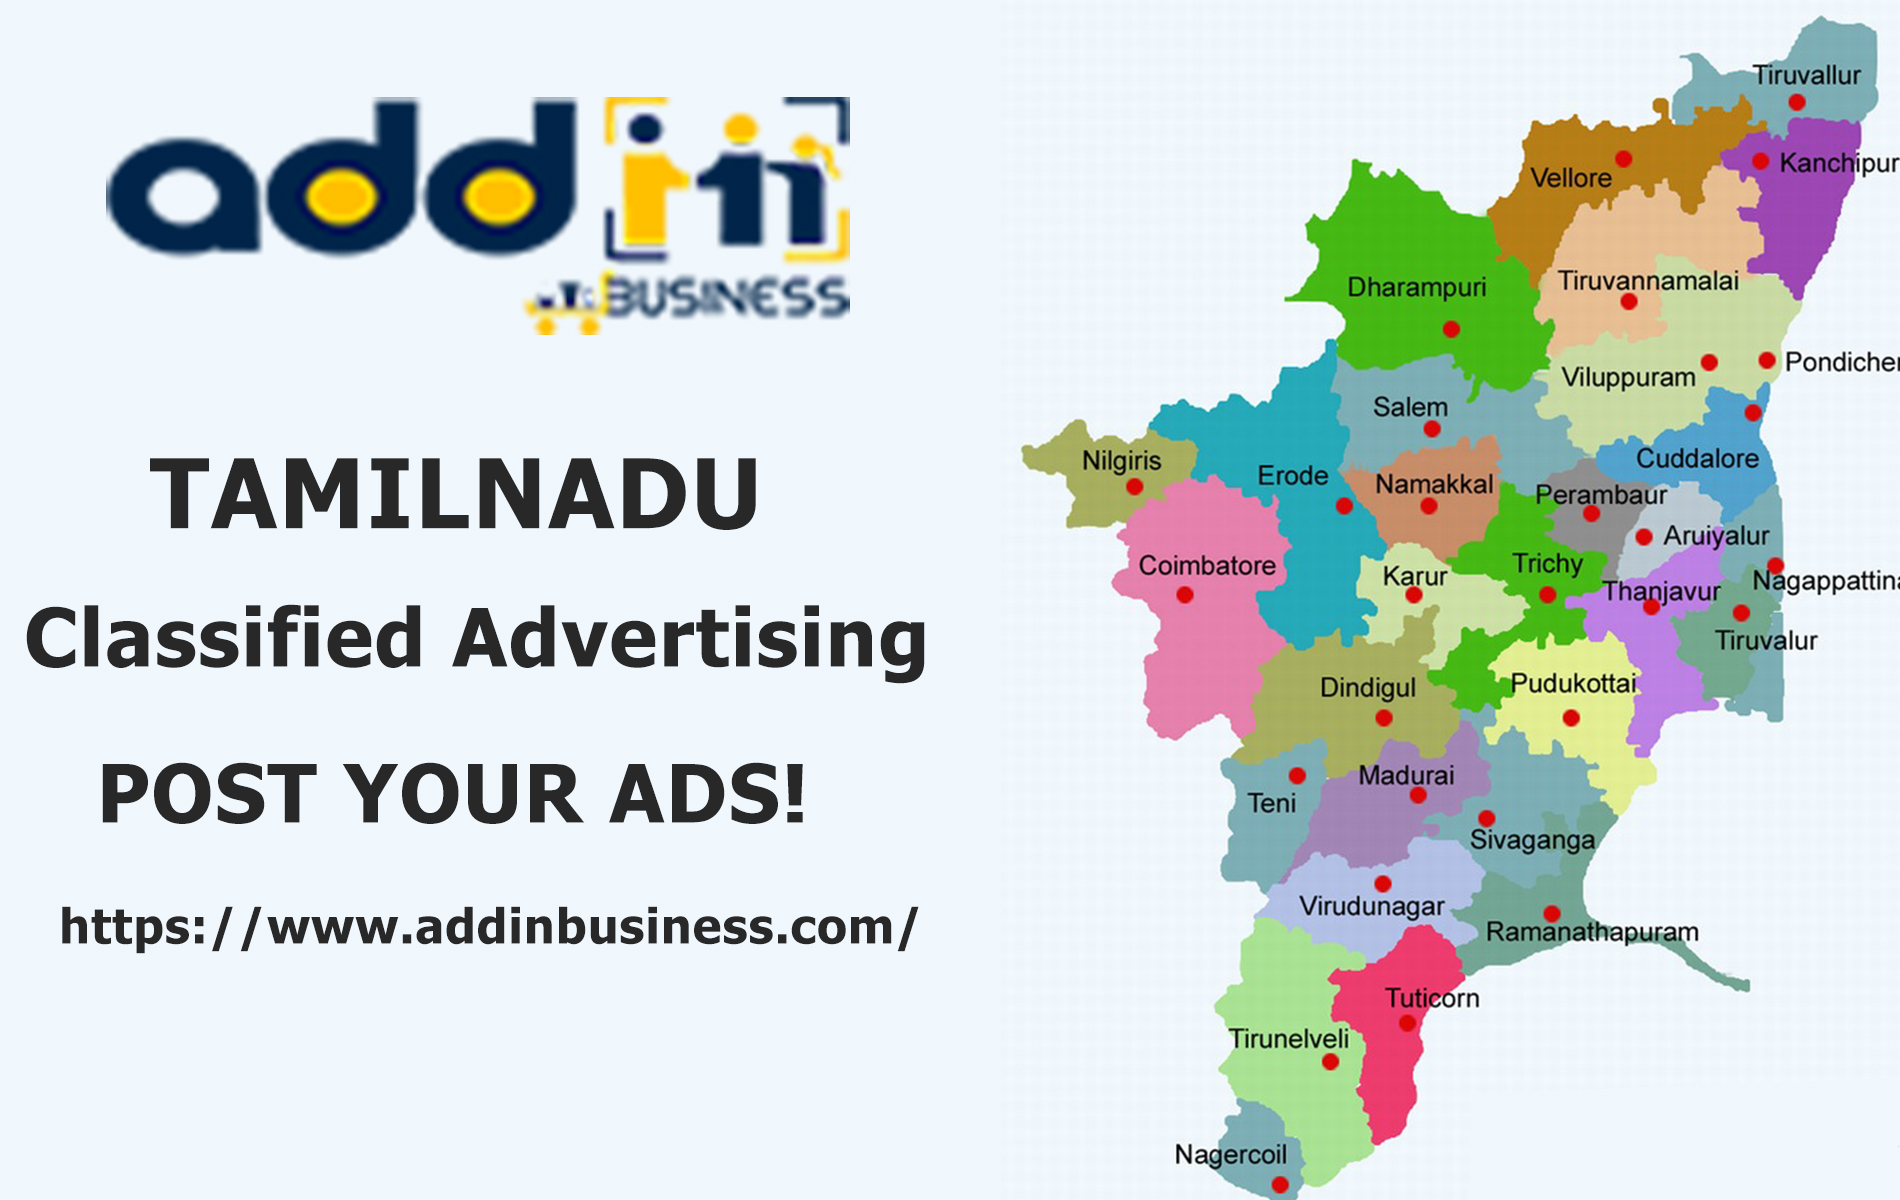 a448025a07 We advertise your small business with our online advertising platform. Post  your free classified ads with us and drive lot of SEO ...